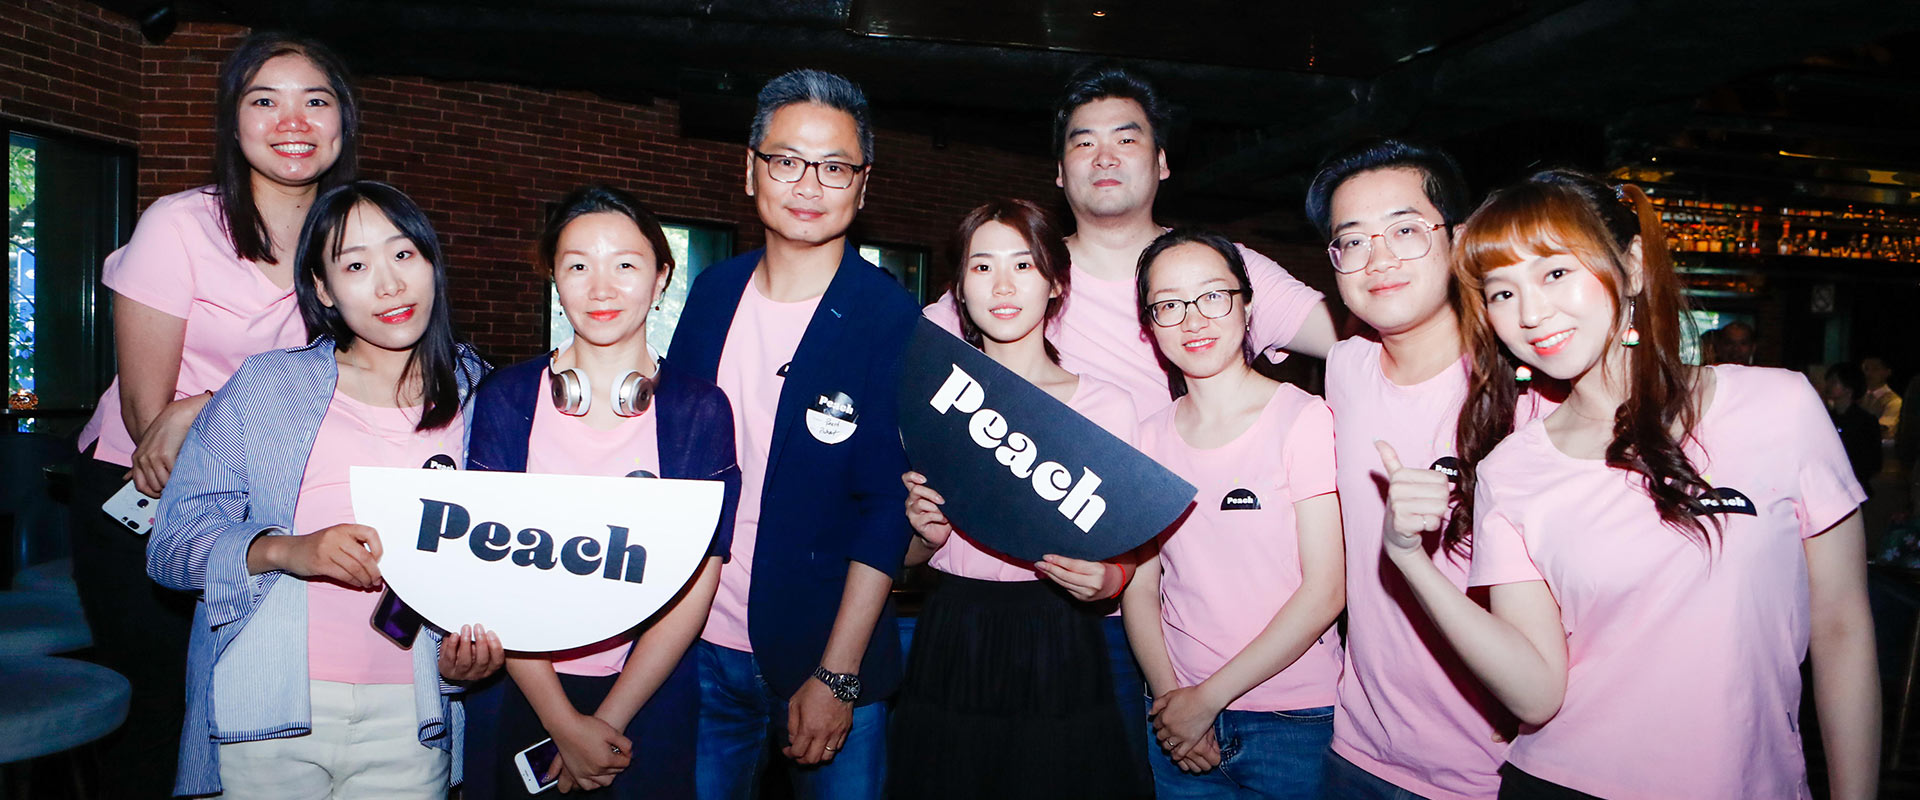 At the Peach party in Shanghai